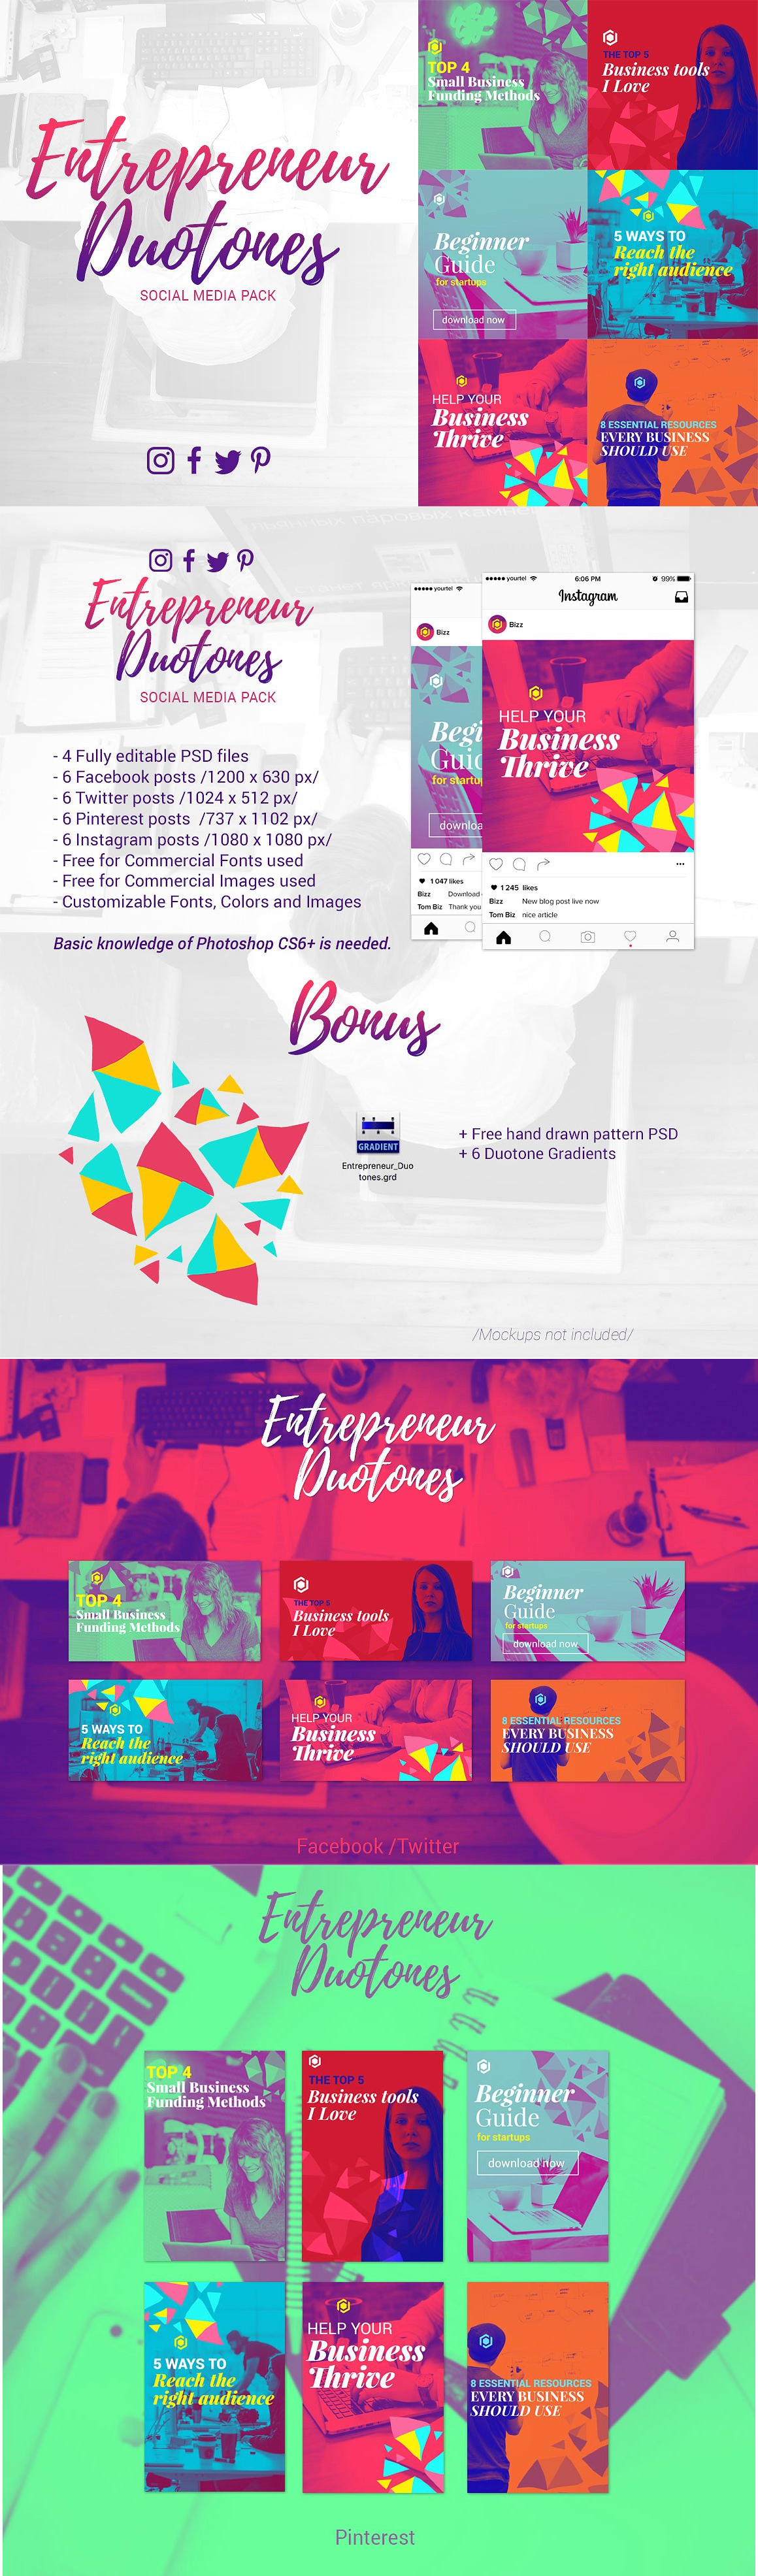 entrepreneur duotones social media templates psd social media